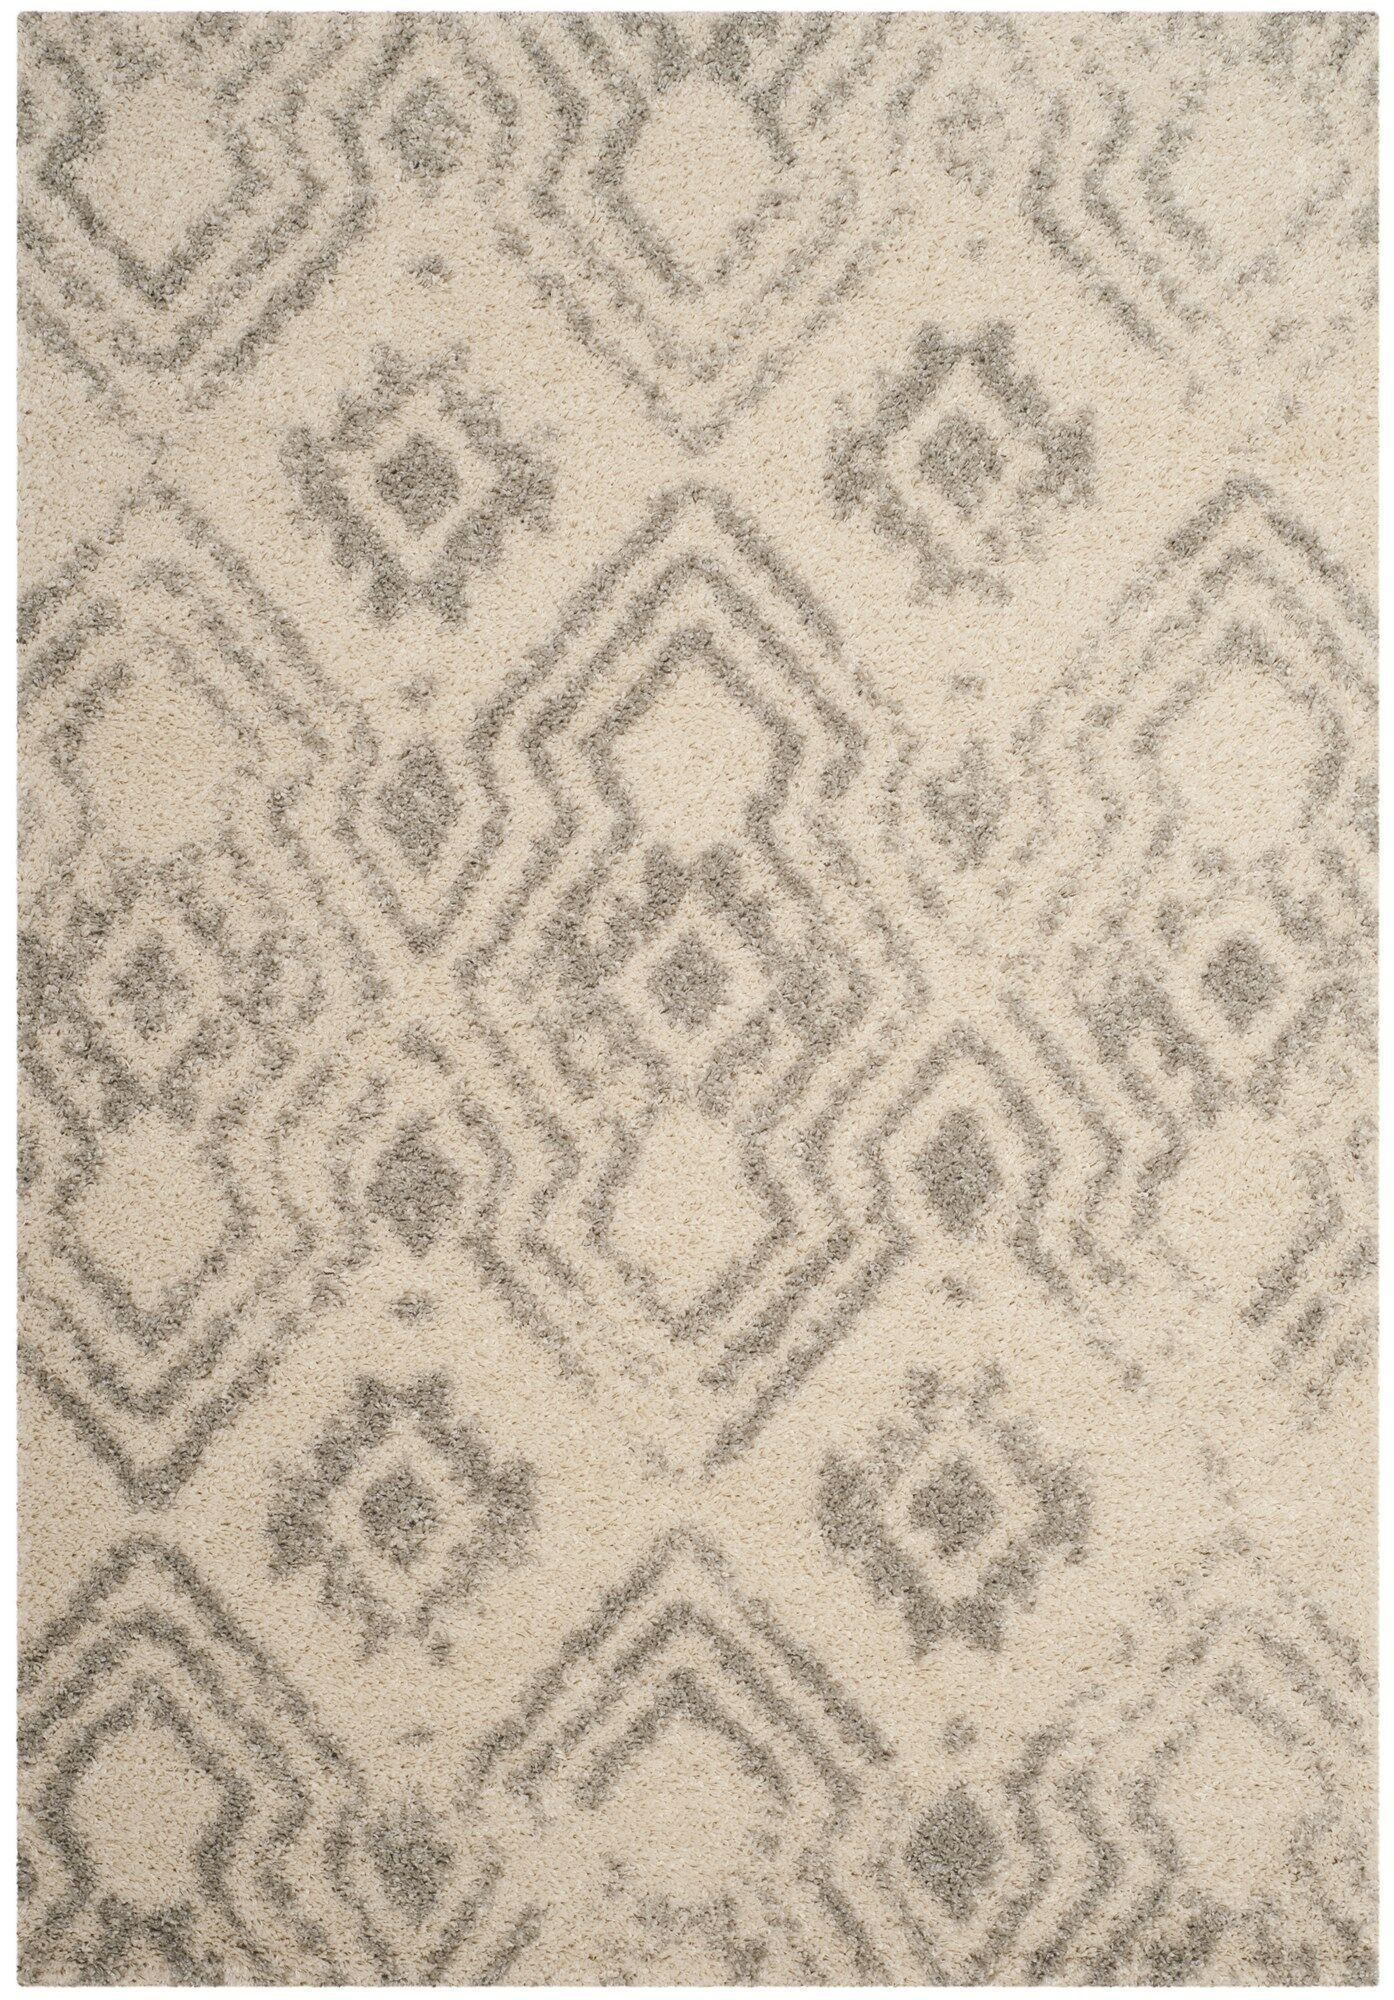 Amicus Gray/Beige Area Rug Rug Size: Rectangle 5'1